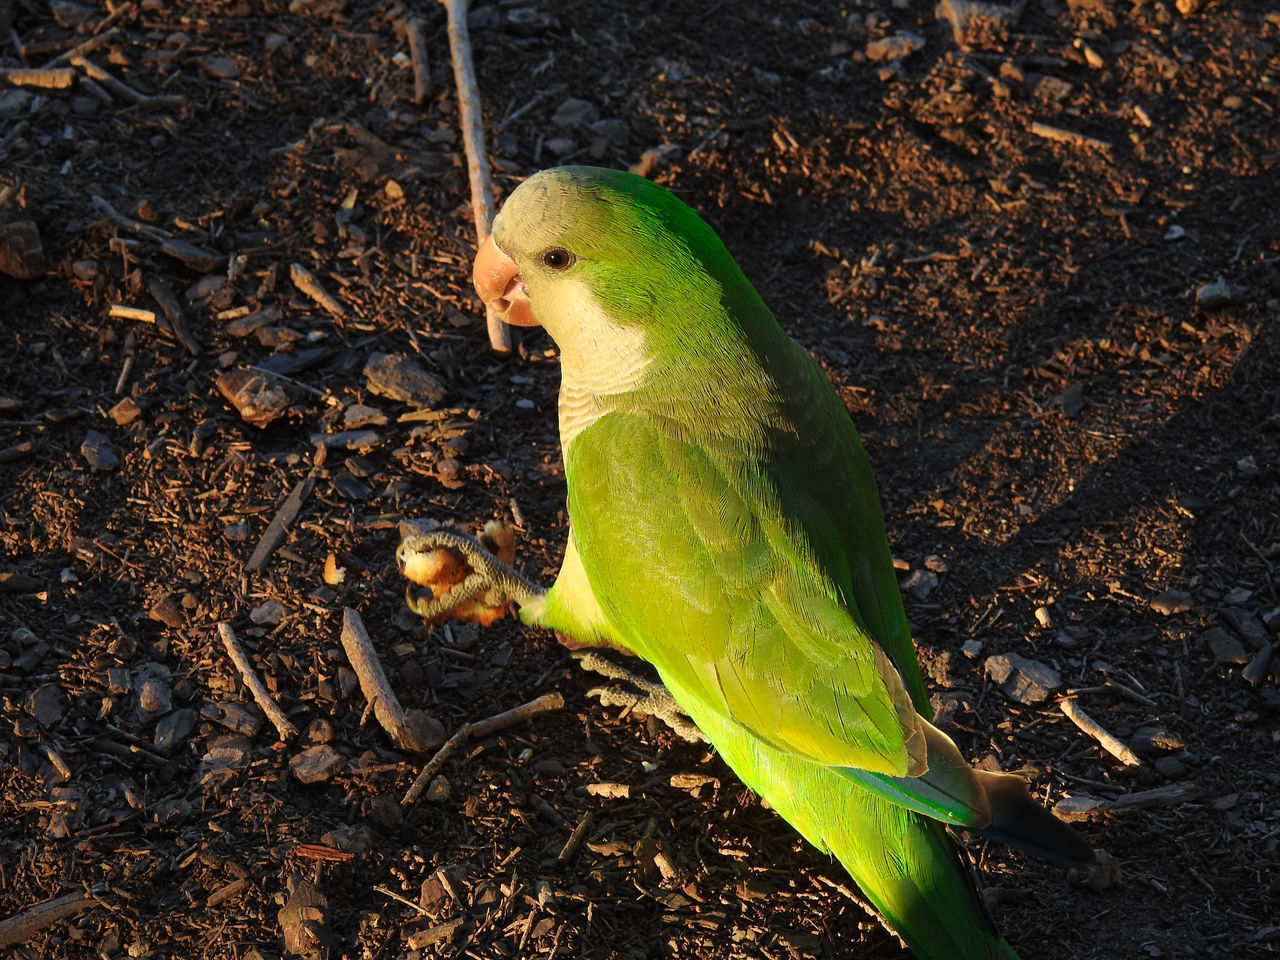 HIGH ANGLE VIEW OF A BIRD PERCHING ON A FIELD